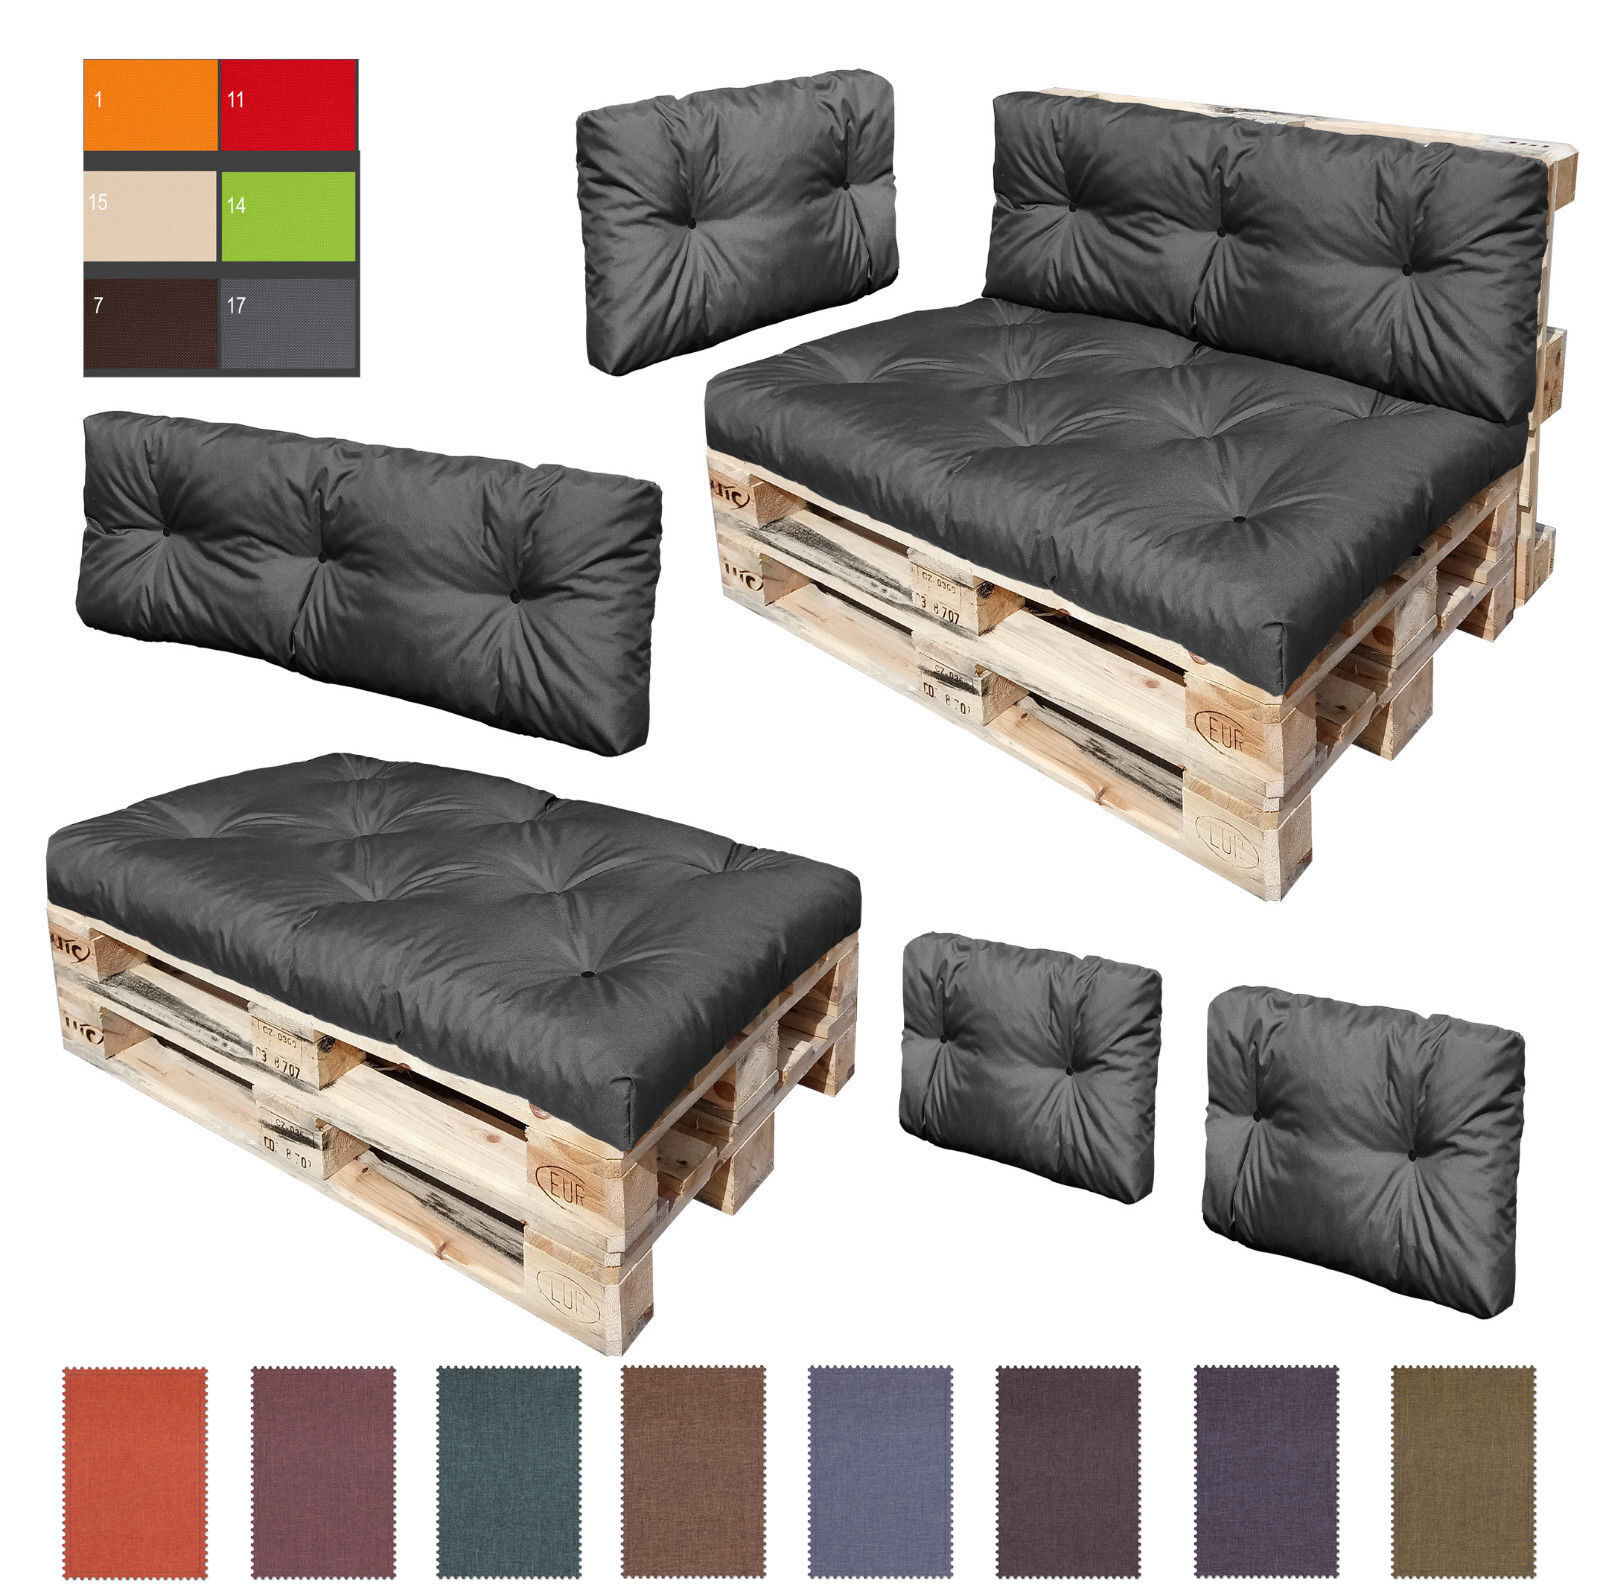 palettenkissen kaltschaum kissen palettensofa. Black Bedroom Furniture Sets. Home Design Ideas